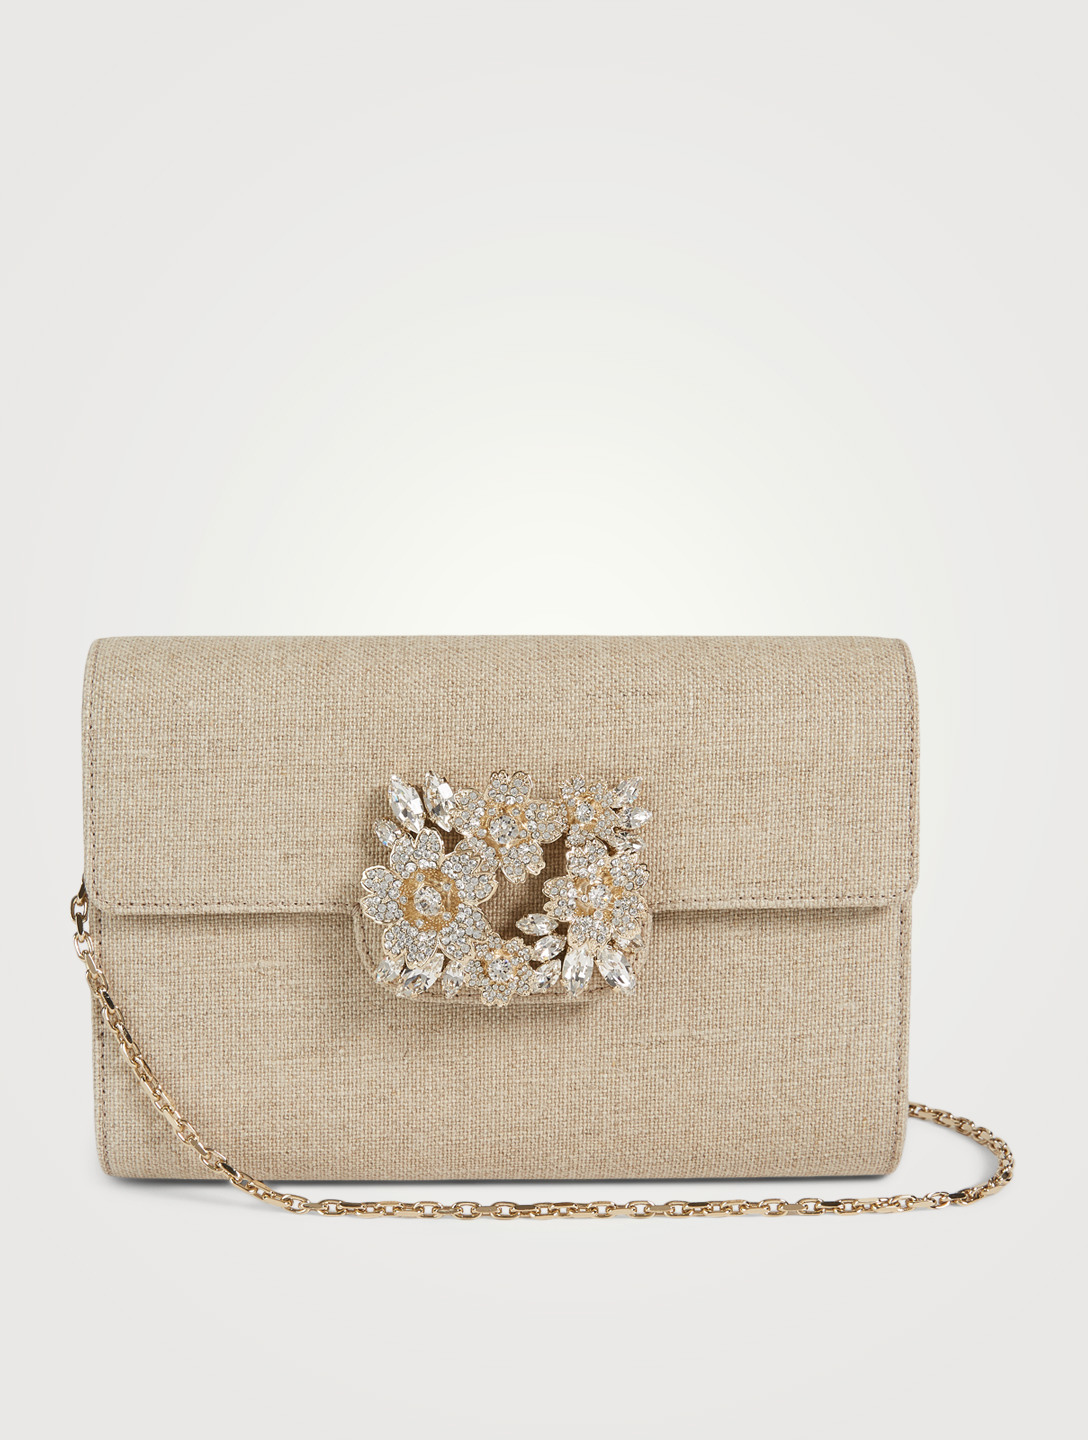 ROGER VIVIER Mini RV Bouquet Strass Linen Envelope Clutch Bag Women's White